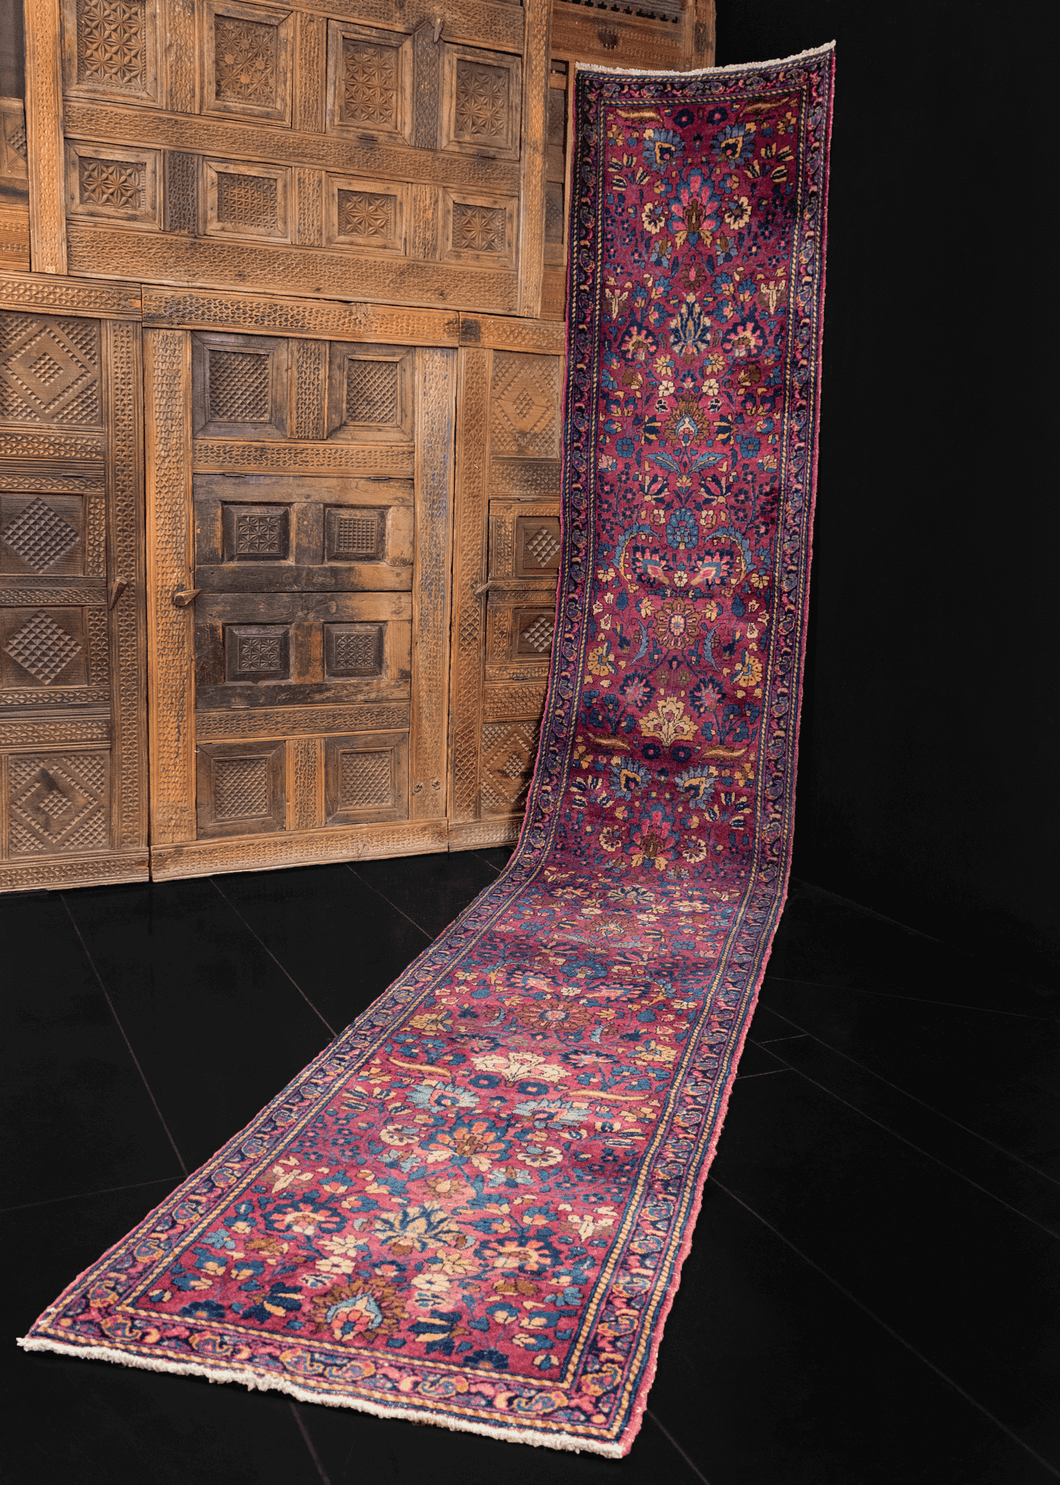 Mashad runner with complex curvilinear floral design on deep purple field